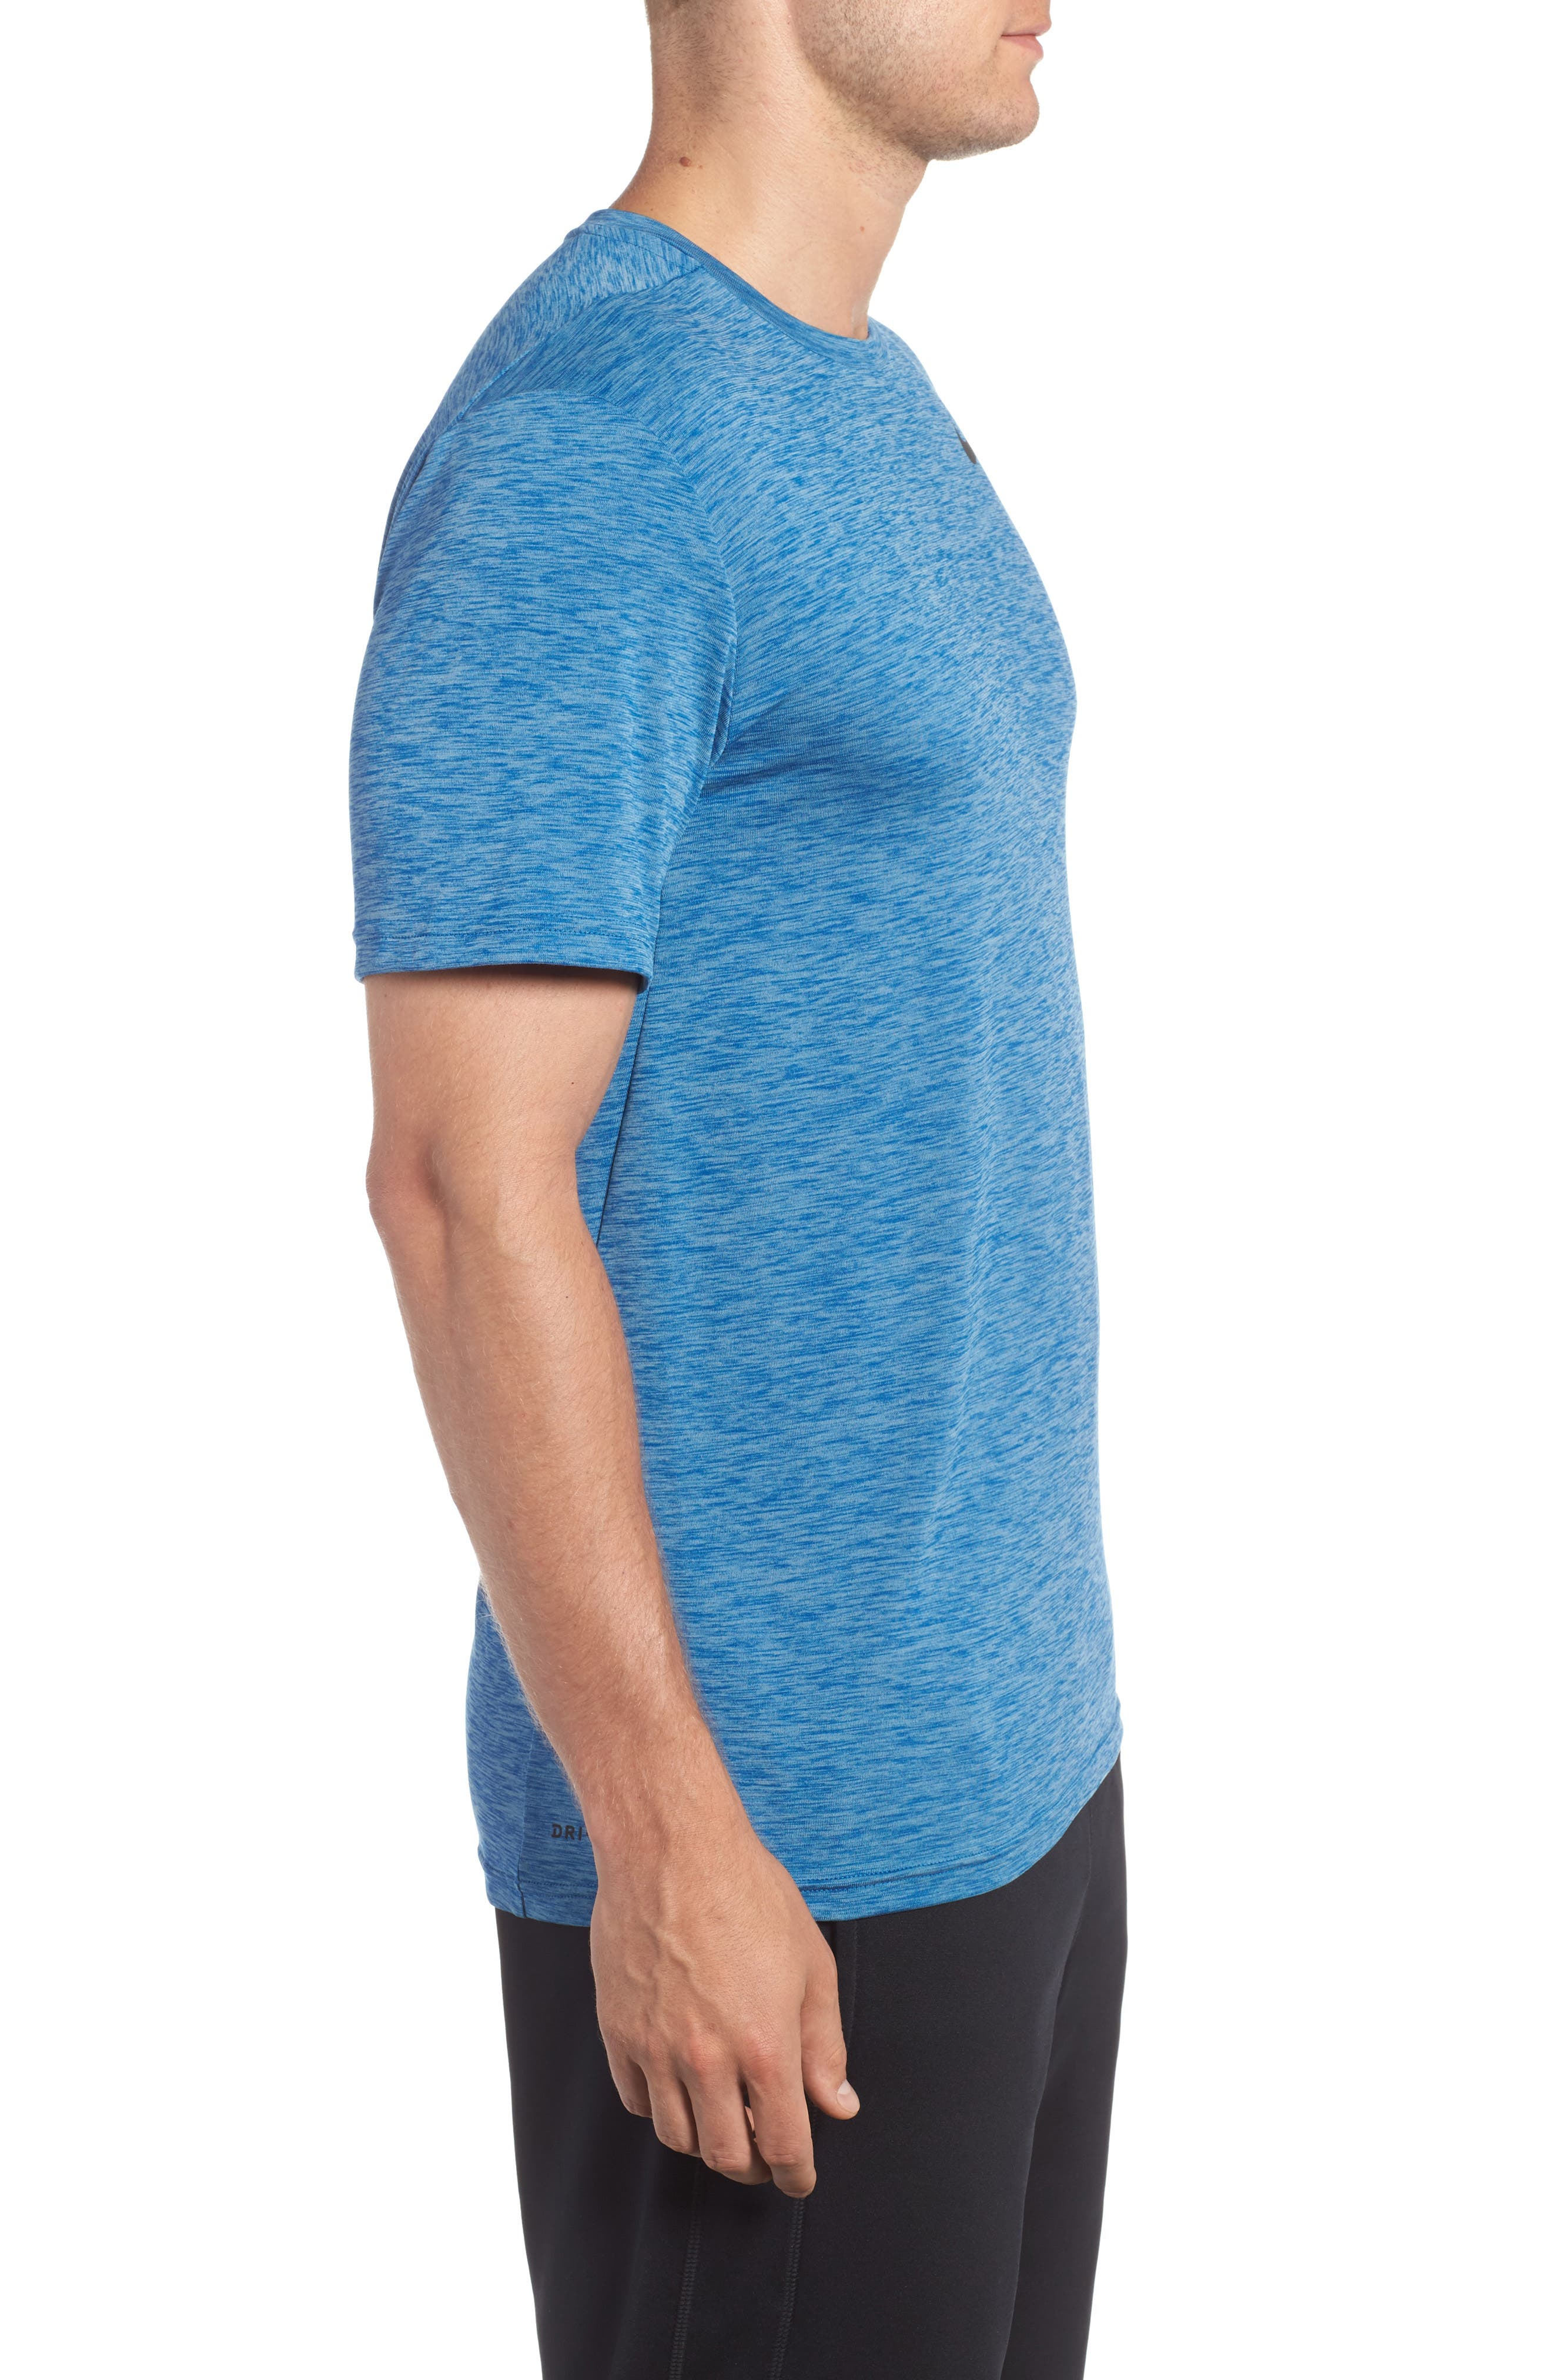 Hyper Dry Training Tee,                             Alternate thumbnail 3, color,                             Cerulean/ Blue Jay/ Black